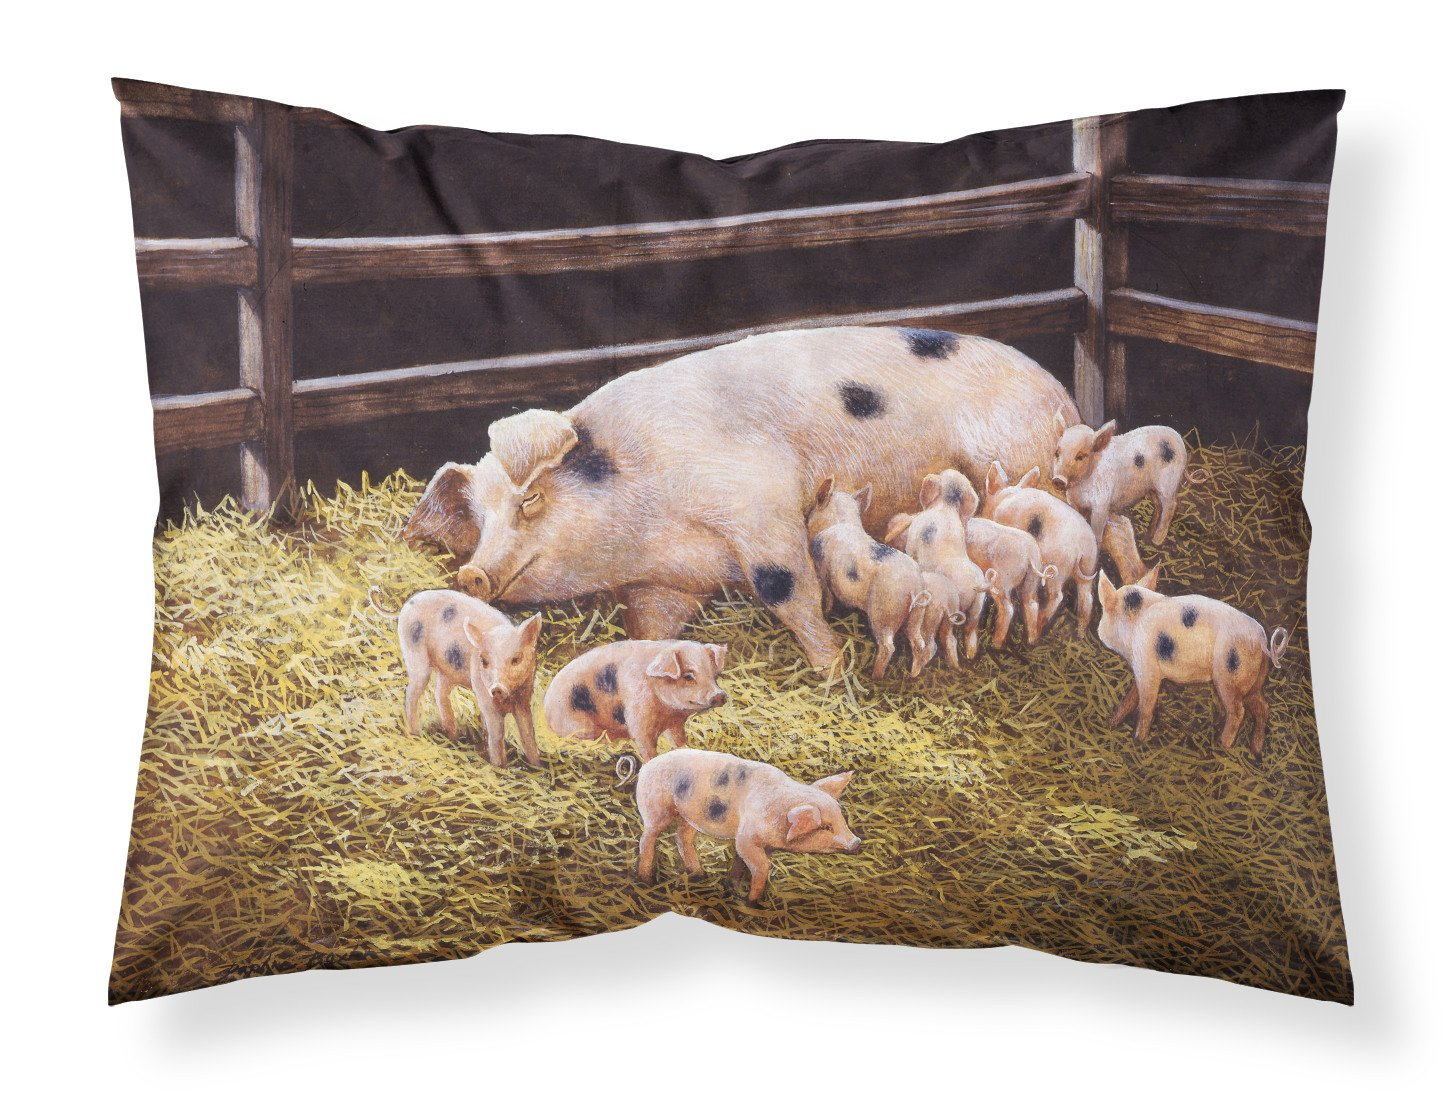 Pigs Piglets at Dinner Time Fabric Standard Pillowcase BDBA0296PILLOWCASE by Caroline's Treasures